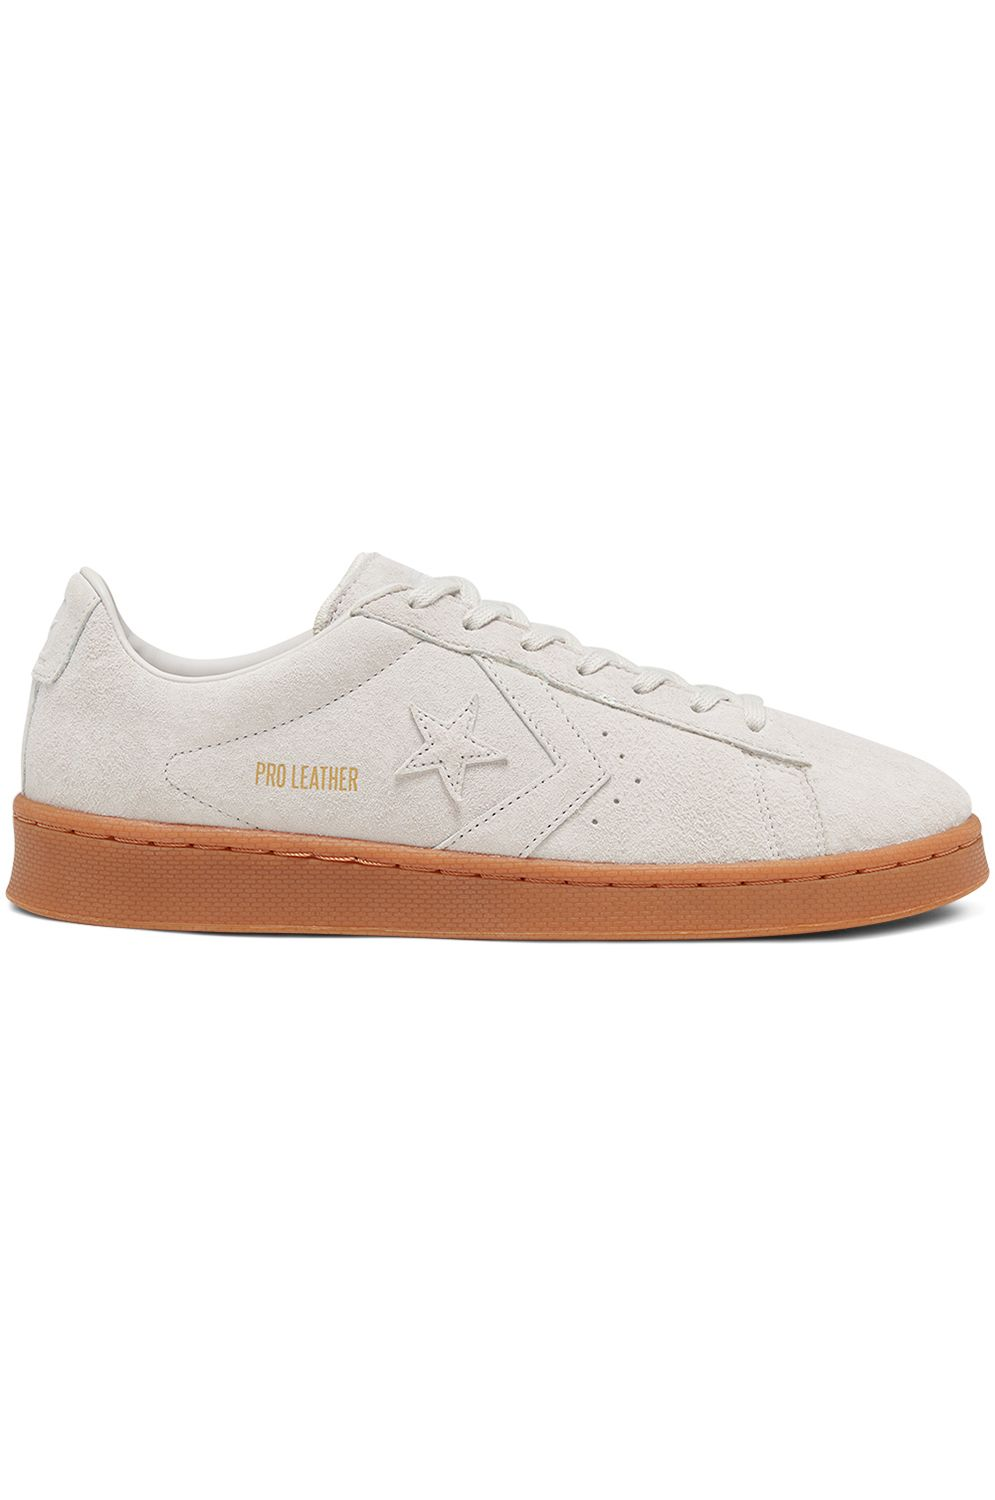 Tenis Converse PRO LEATHER OX Pale Patty/Pale Putty/Gum